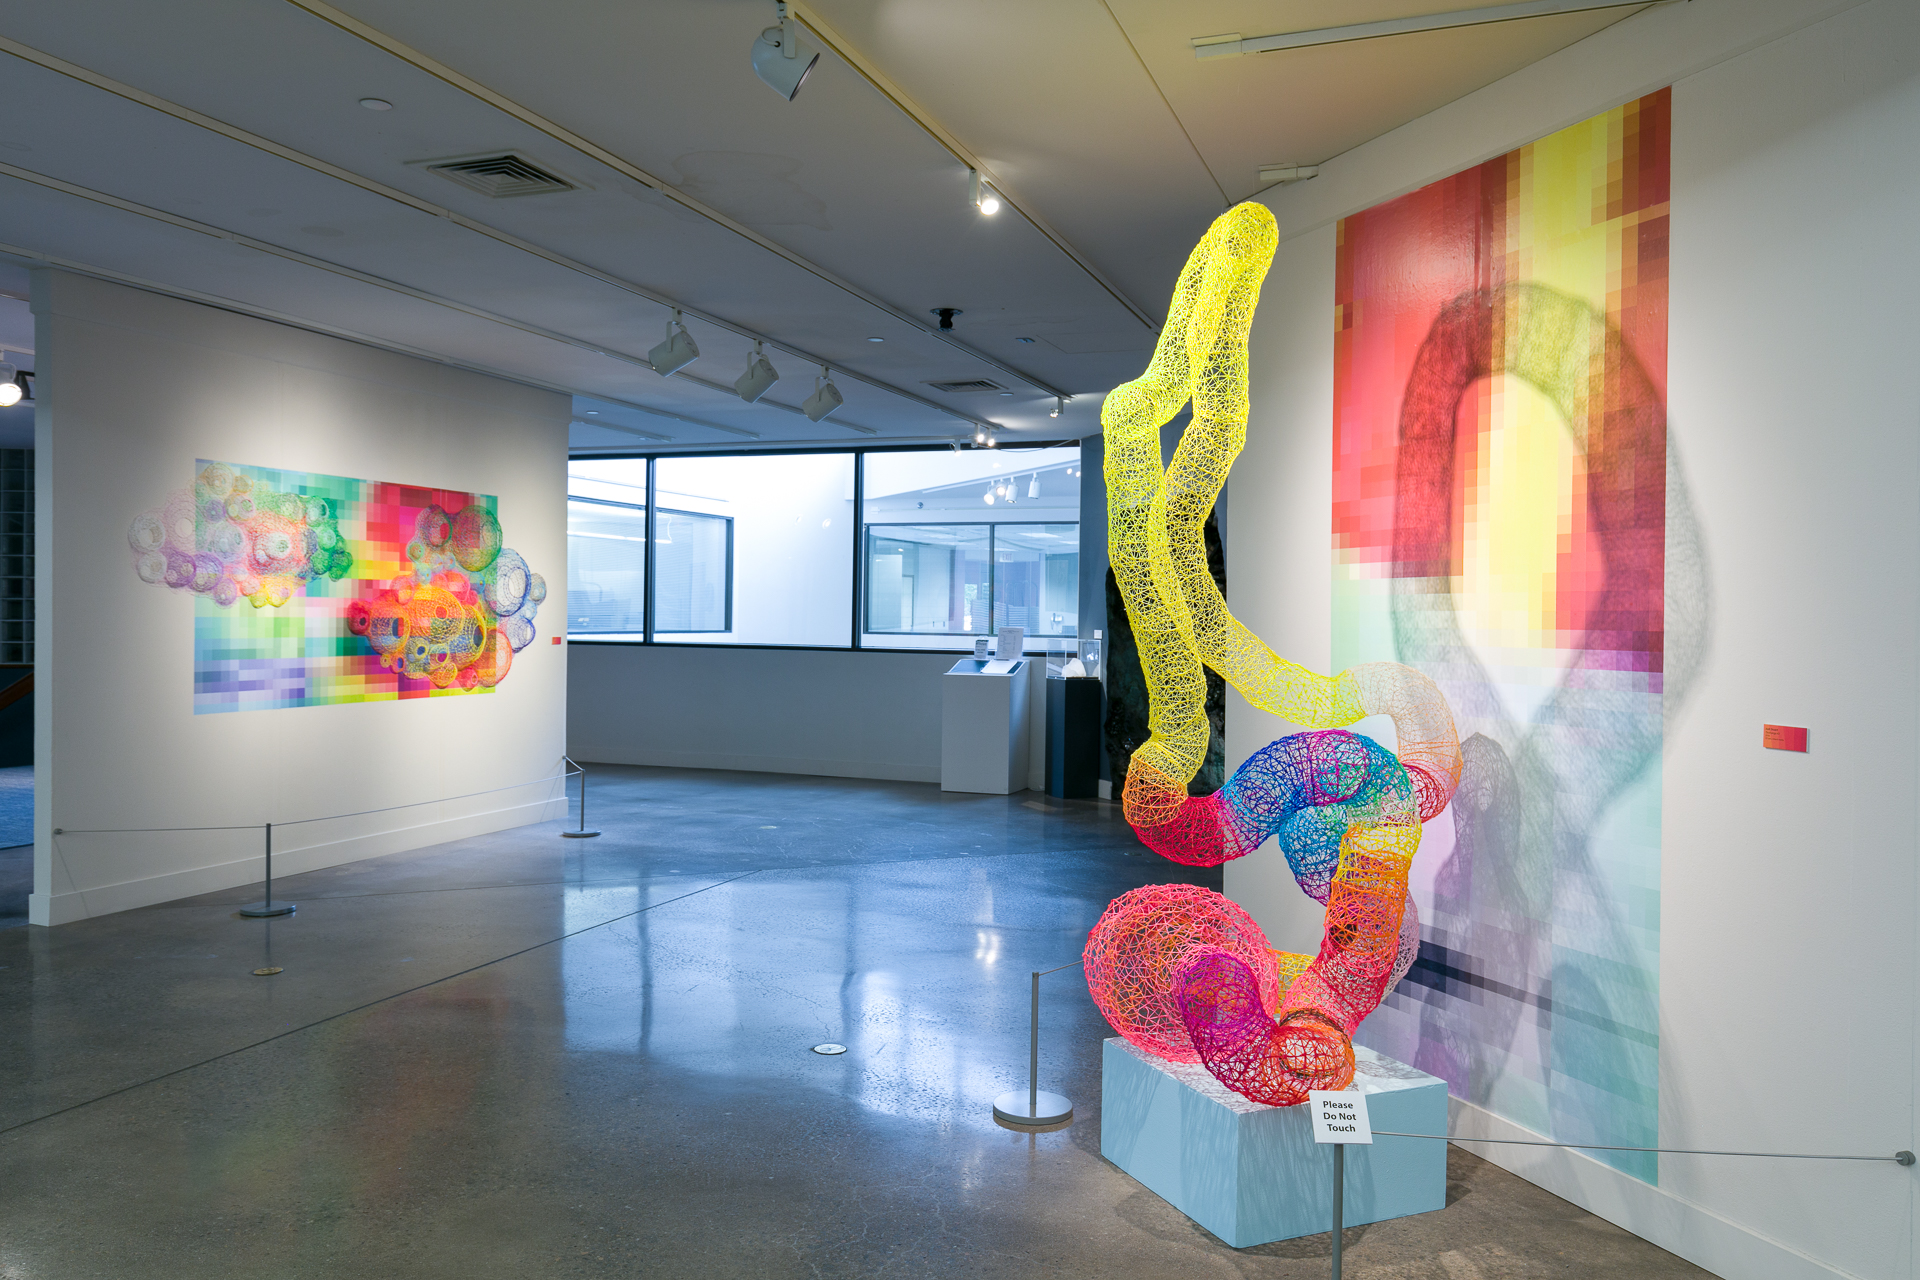 Installation view 'Connected by Color' Arvarda Center for the Arts and Humanities, Colorado 2018 (Photo Wes Magyar)